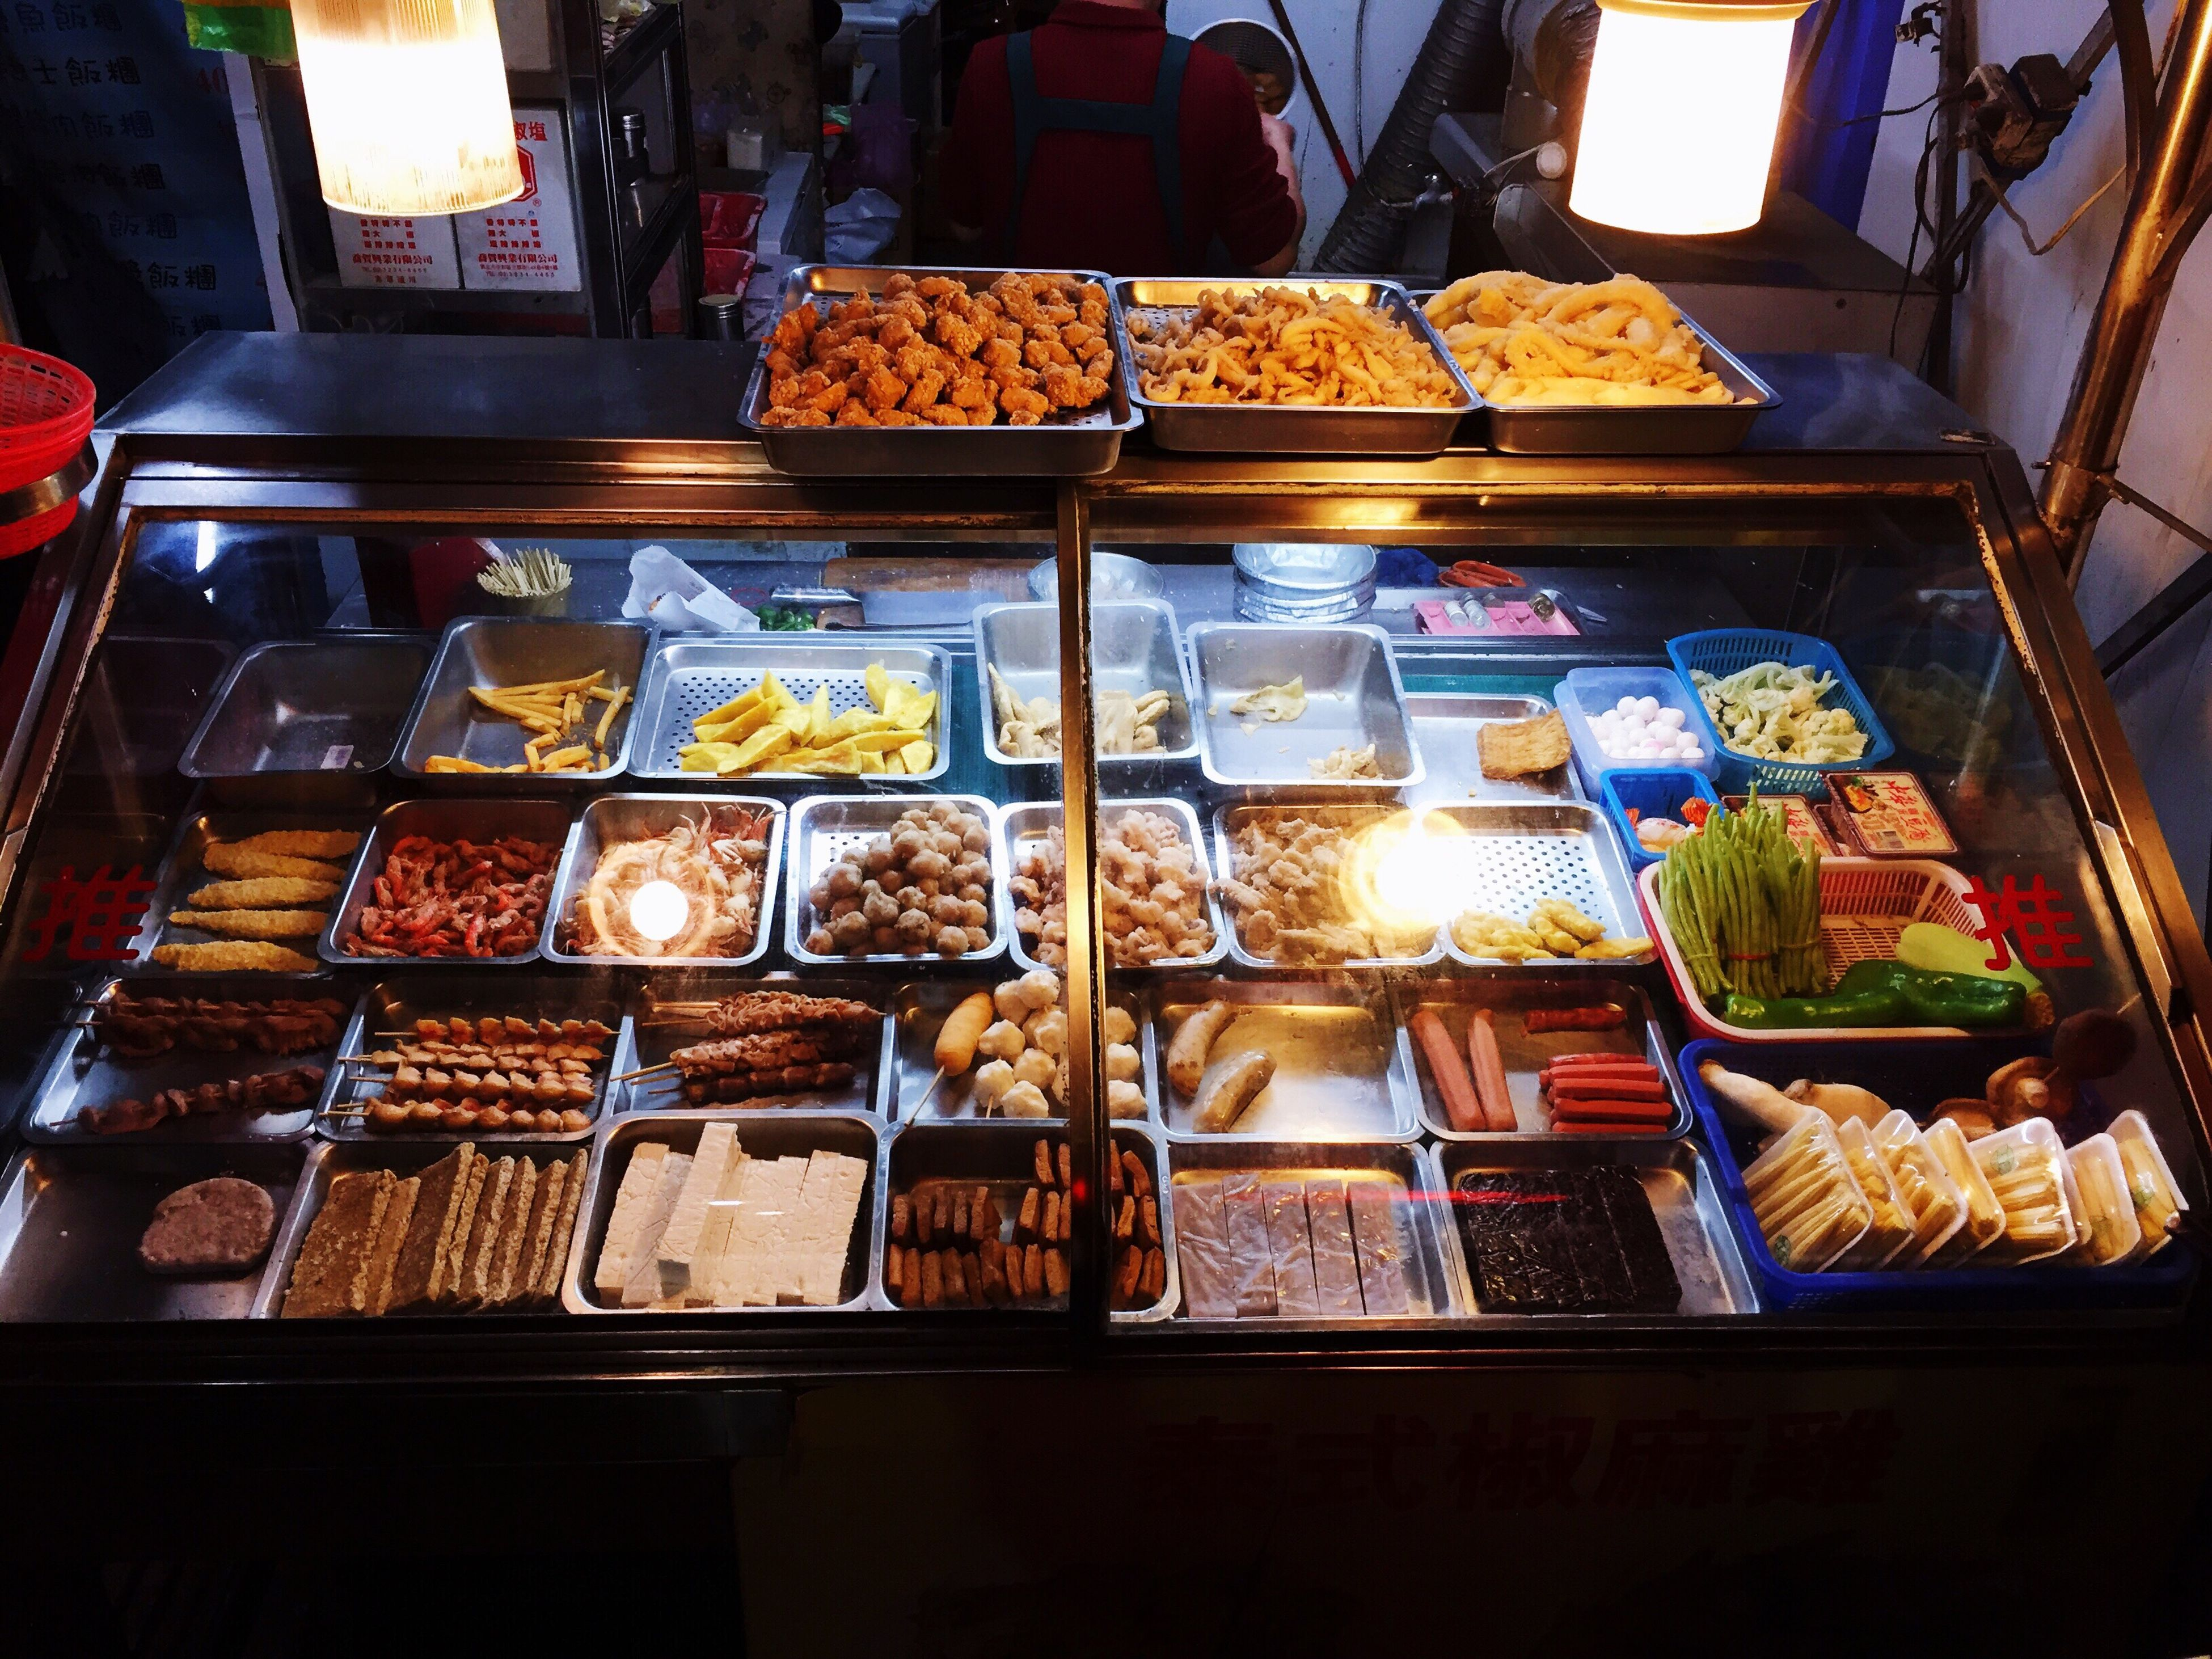 indoors, food, food and drink, retail, for sale, market stall, market, variation, choice, freshness, store, abundance, large group of objects, arrangement, display, sale, shop, small business, meat, healthy eating